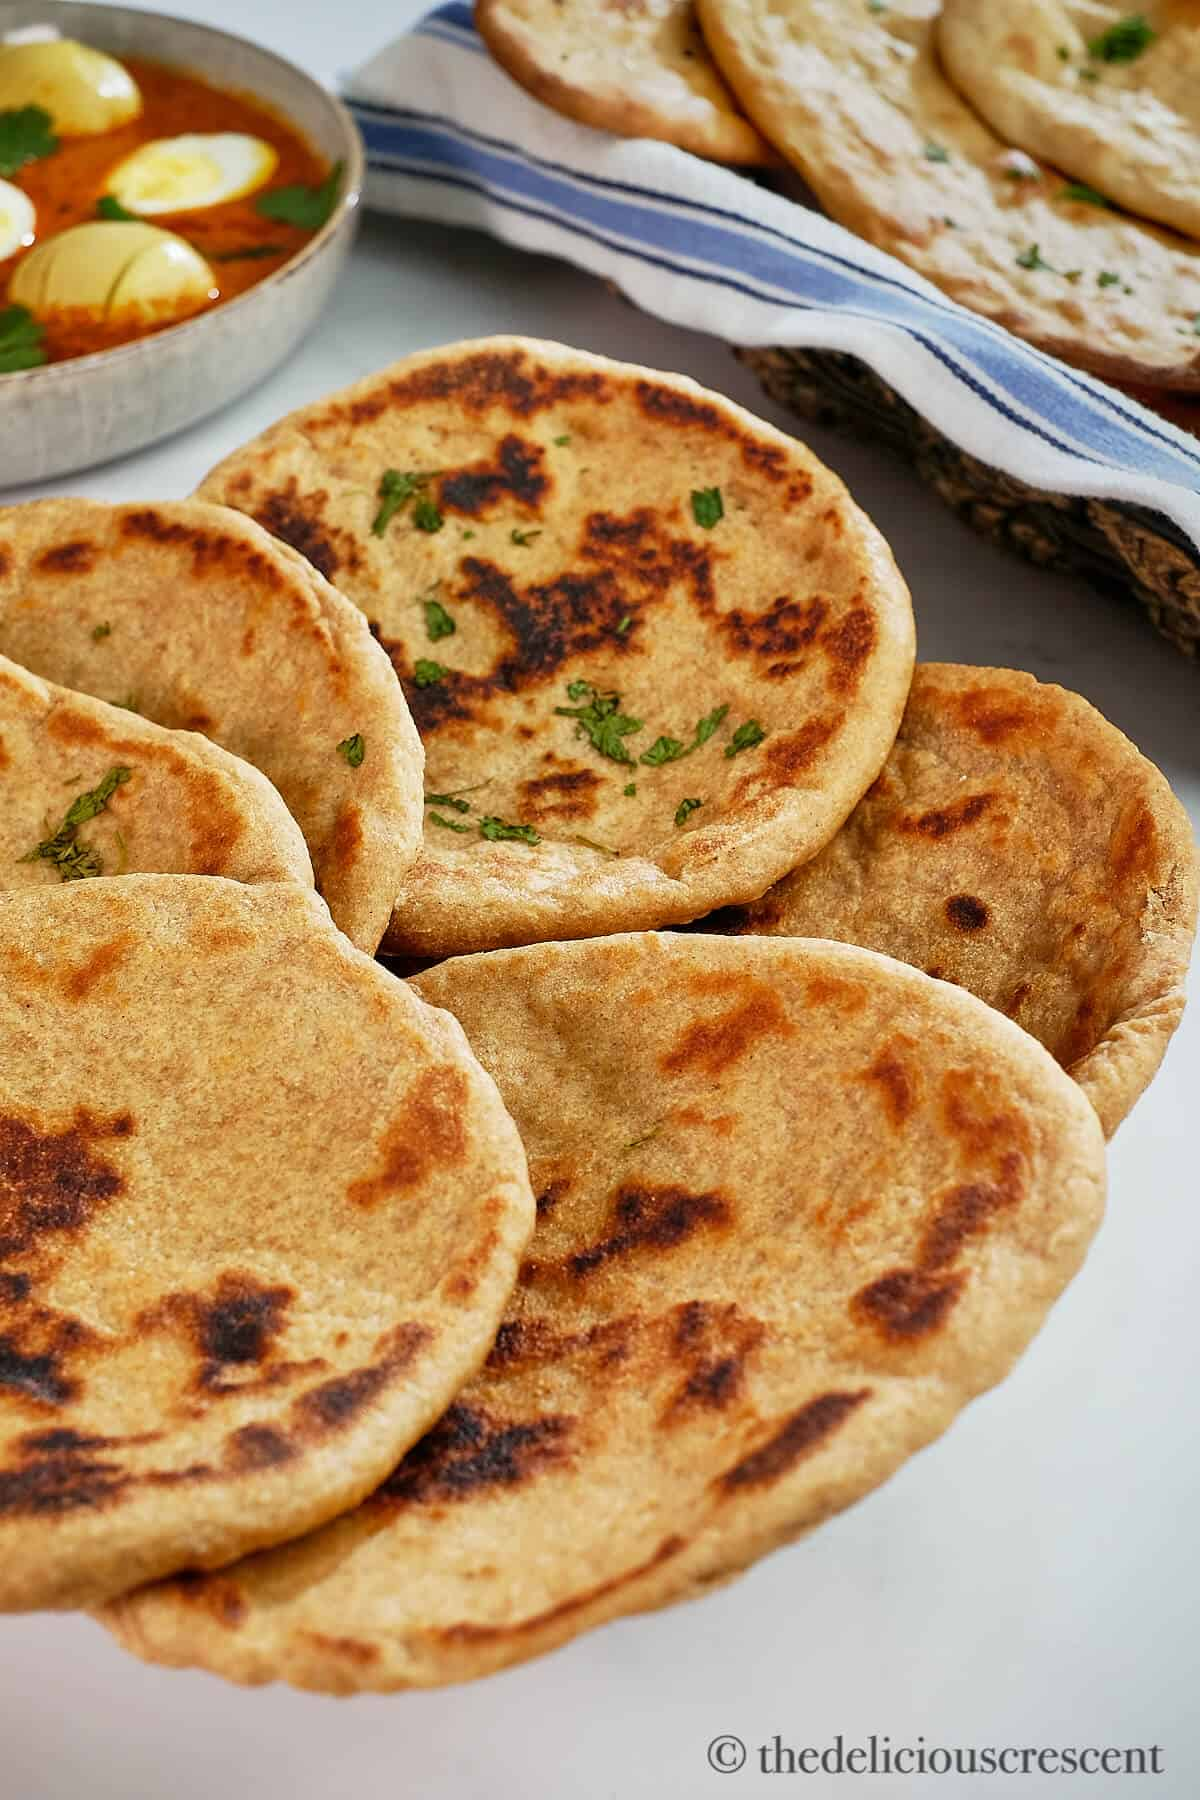 Healthy flatbreads cooked on stove top and served.